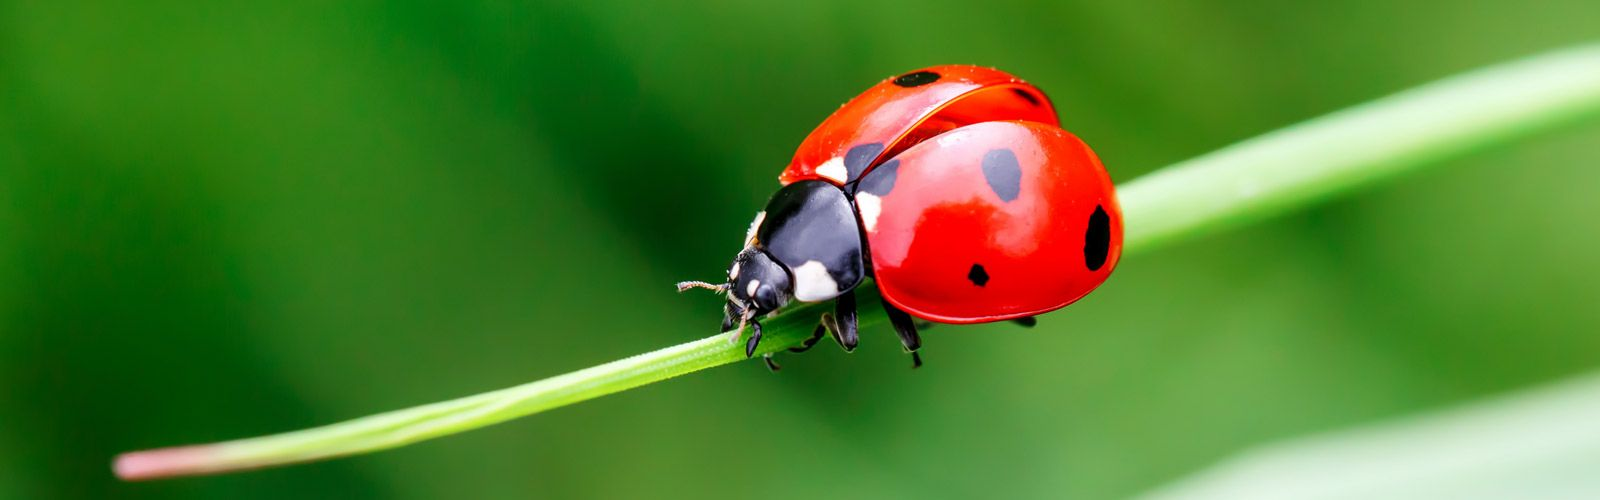 a close up of a ladybug